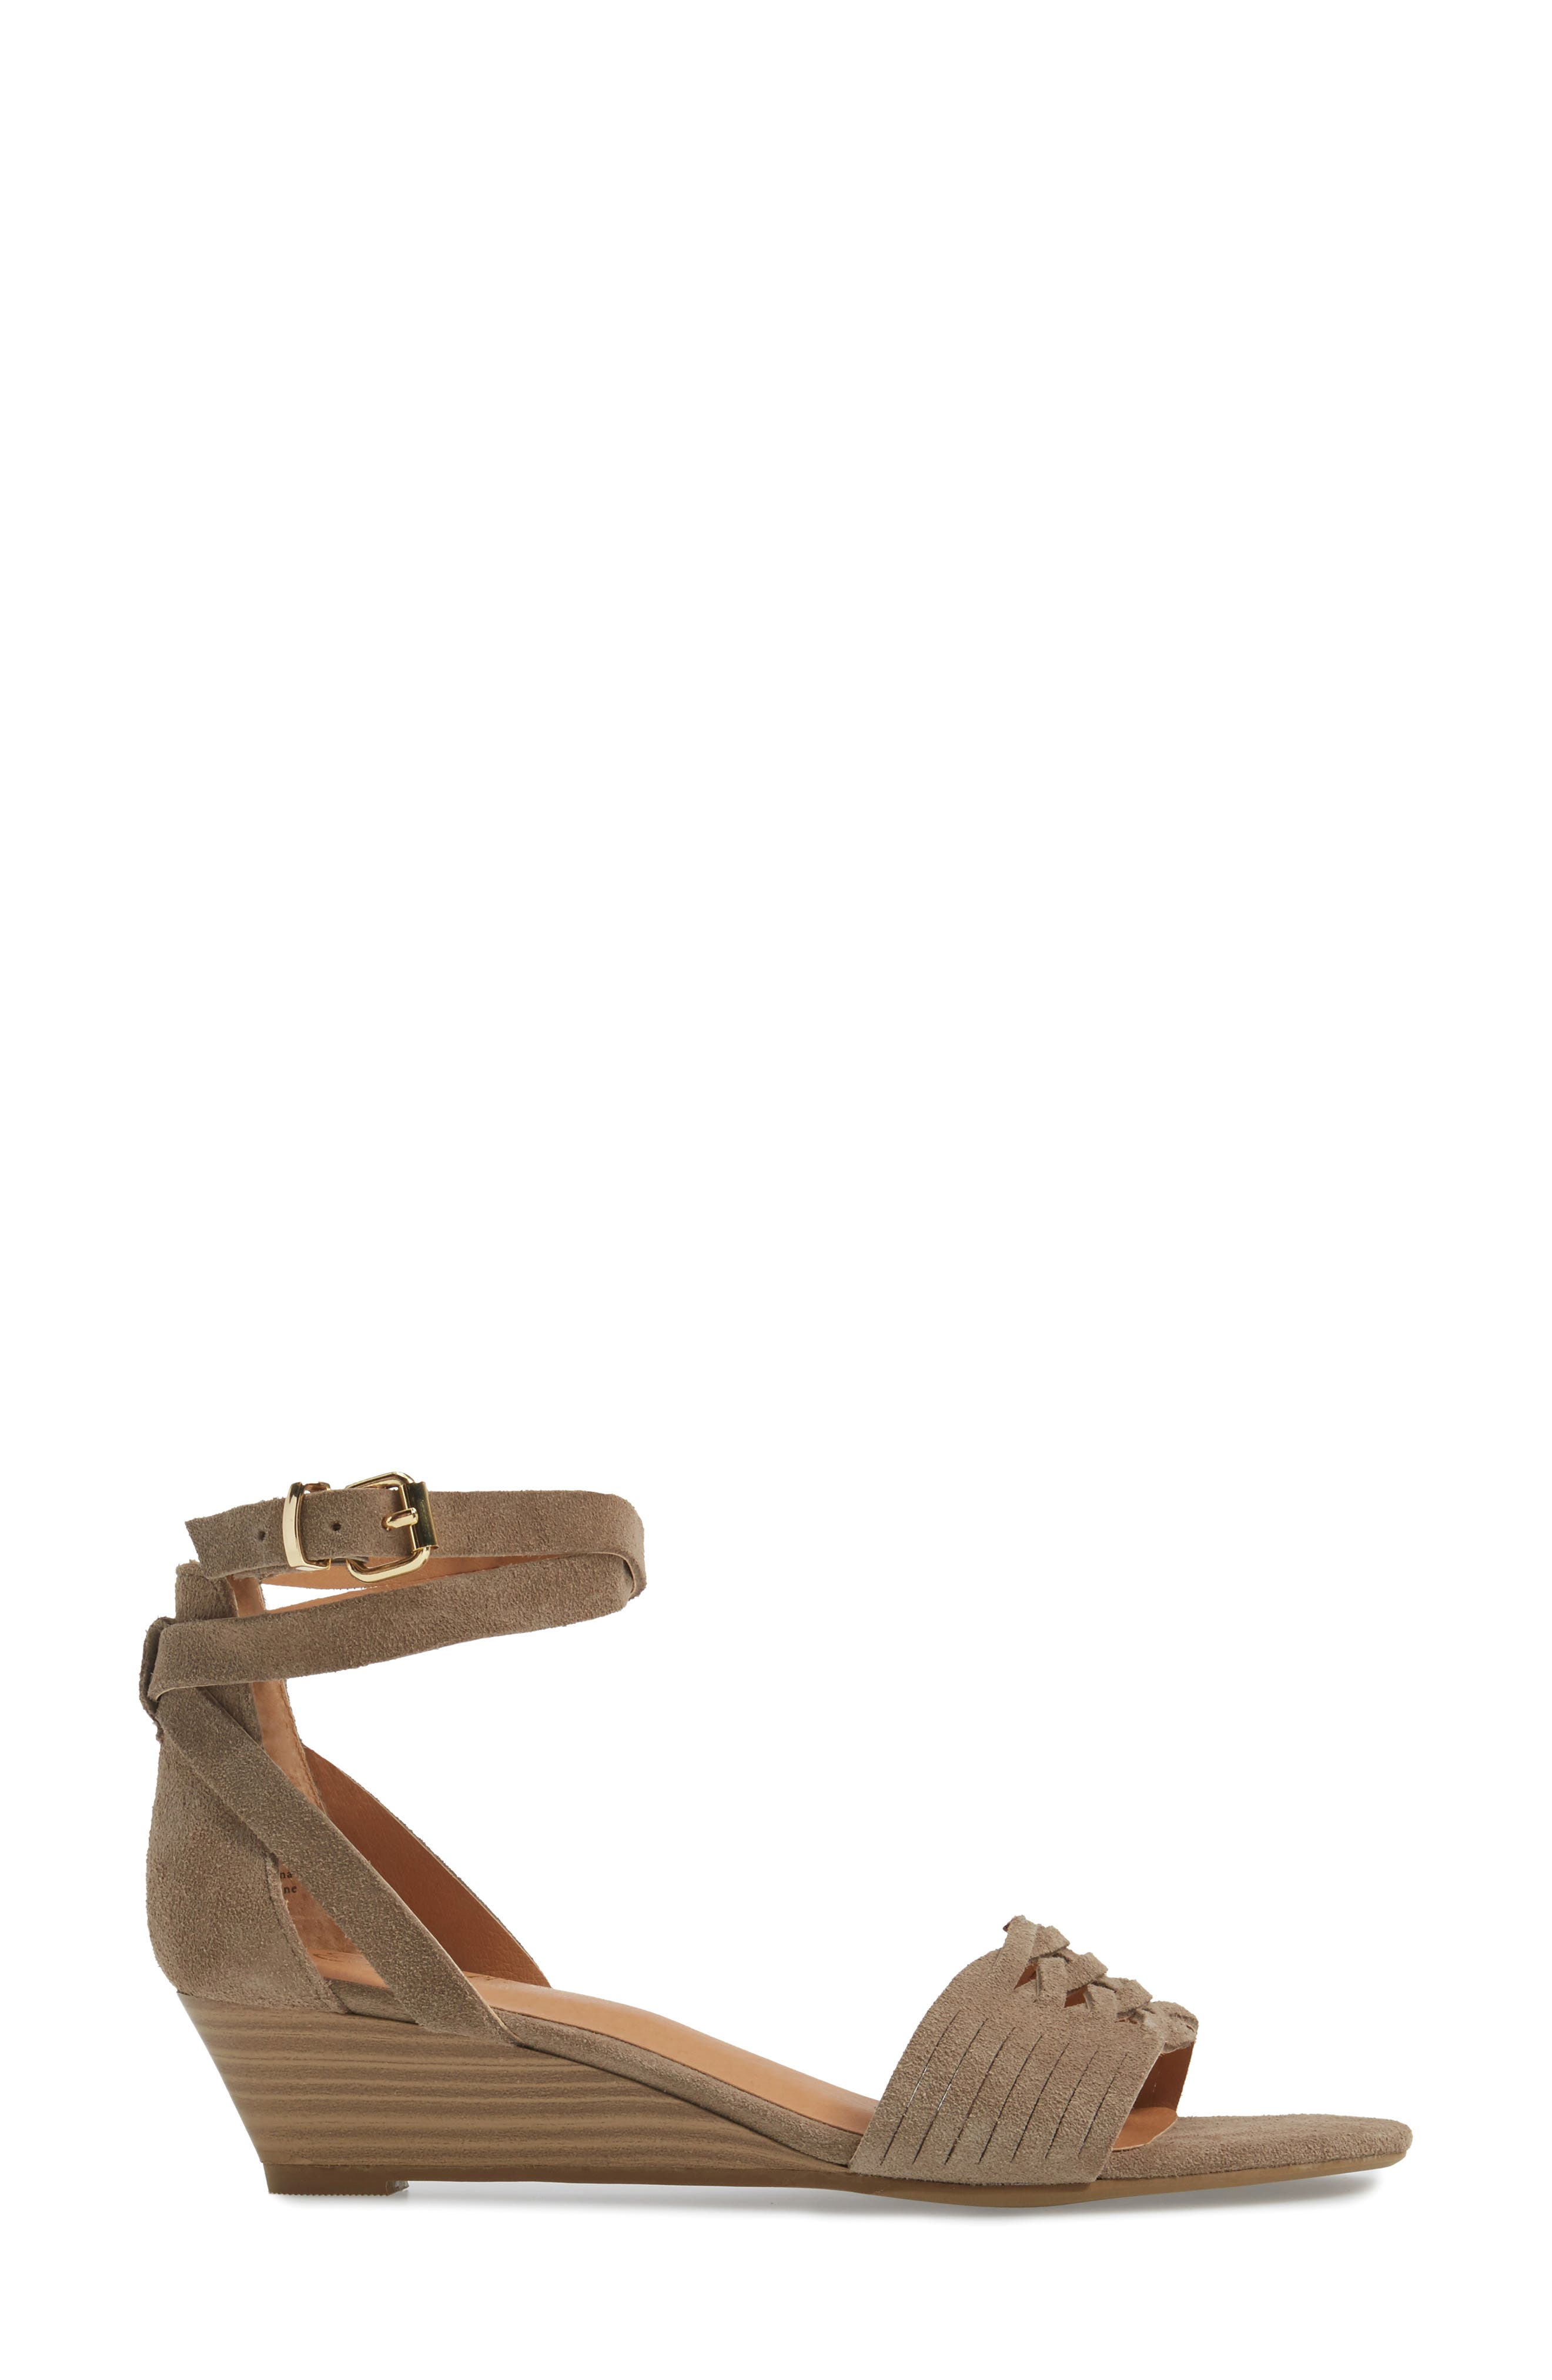 Sincere Wraparound Wedge Sandal,                             Alternate thumbnail 6, color,